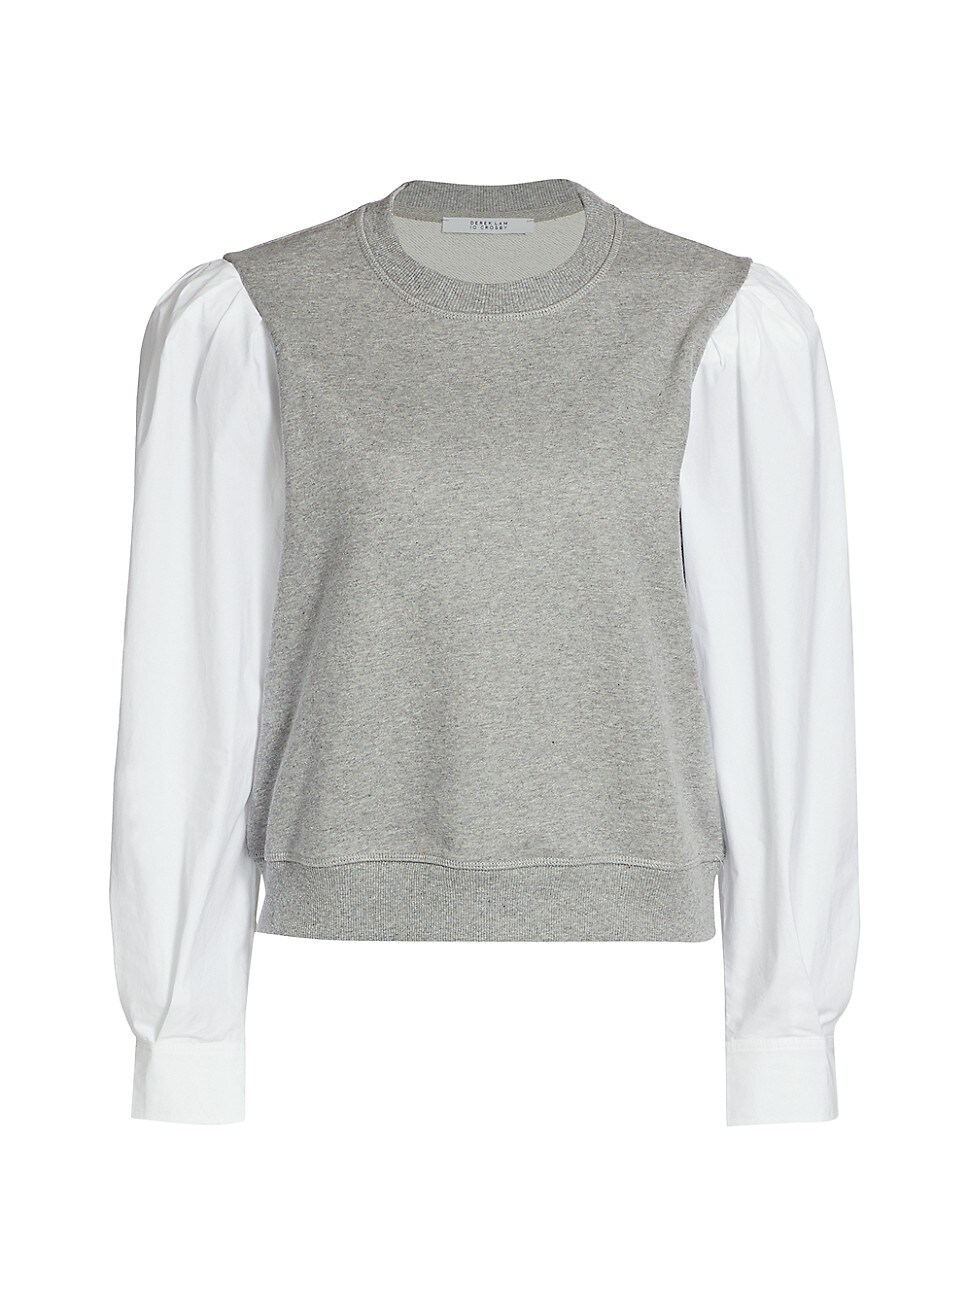 Derek Lam 10 Crosby Cottons WOMEN'S MILTON MIXED MEDIA PUFF-SLEEVE SWEATSHIRT